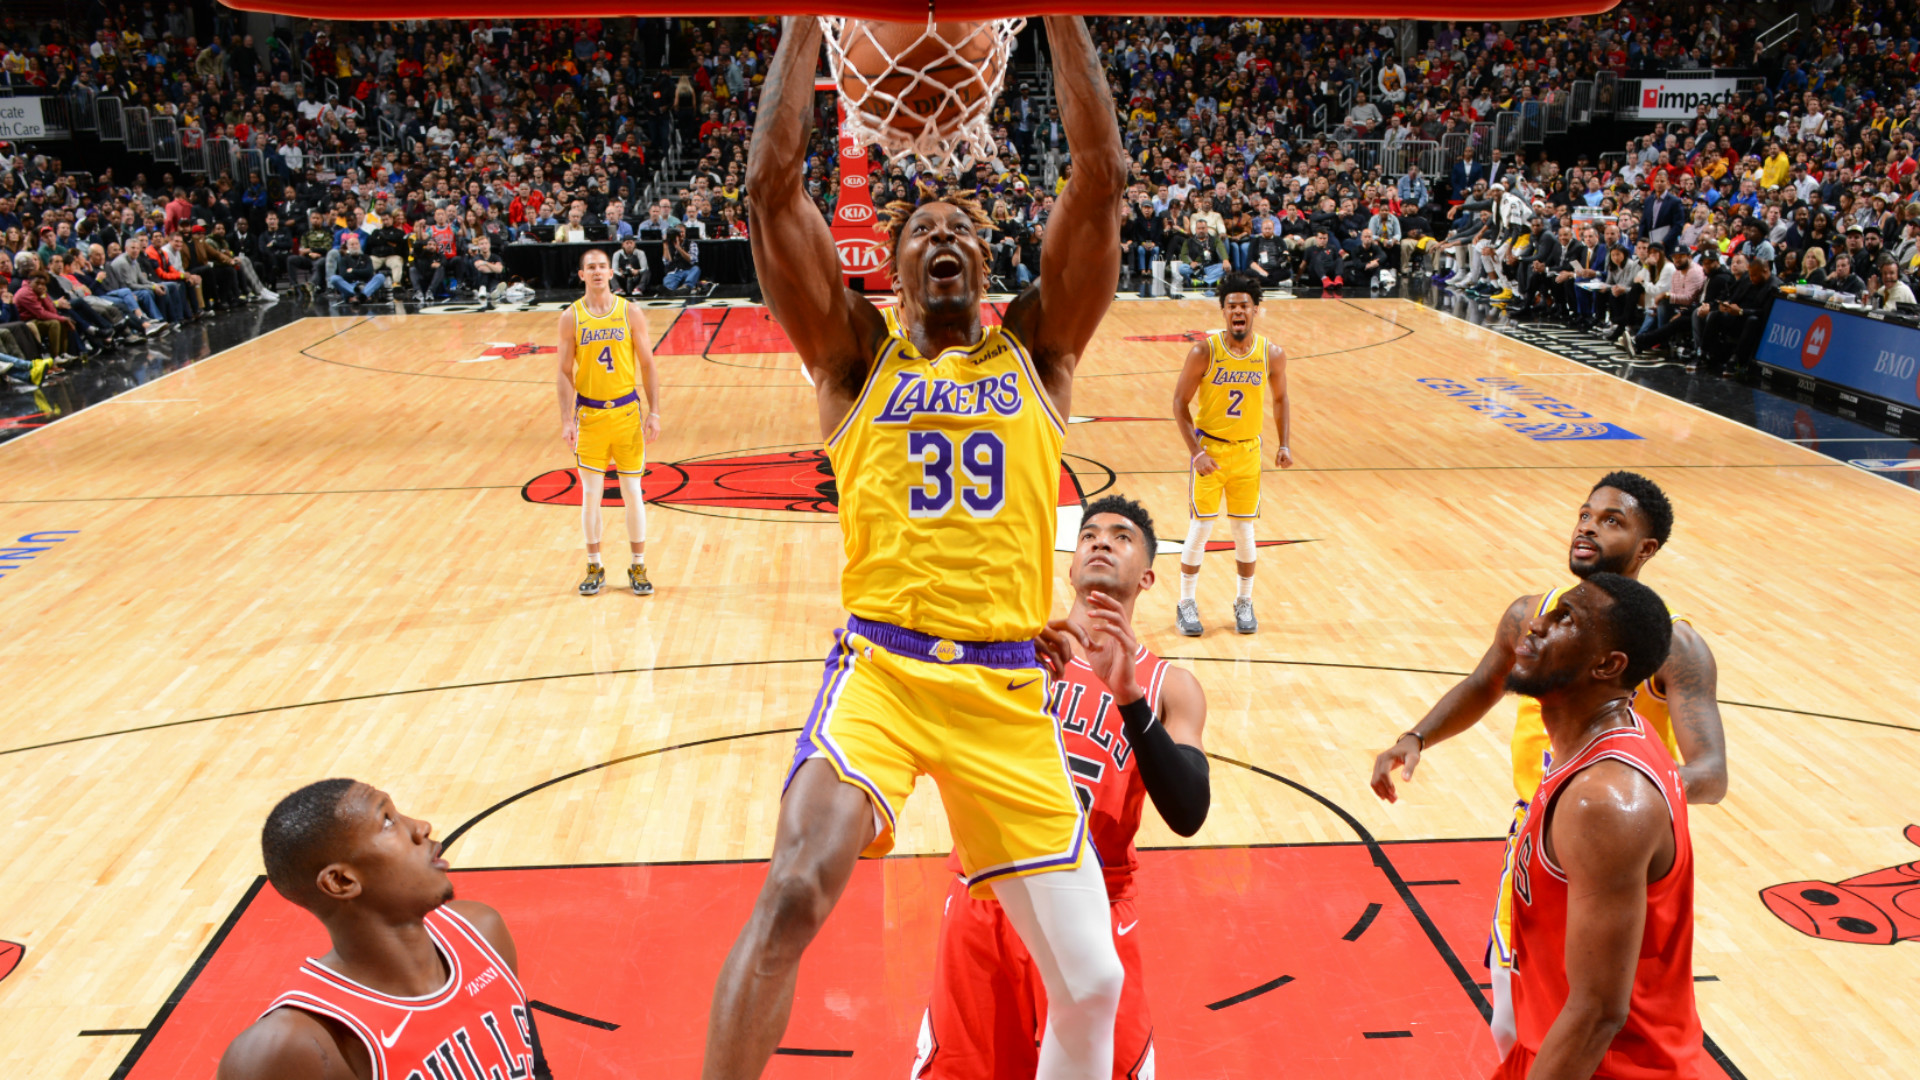 Nba All Star Game 2020 Los Angeles Lakers Centre Dwight